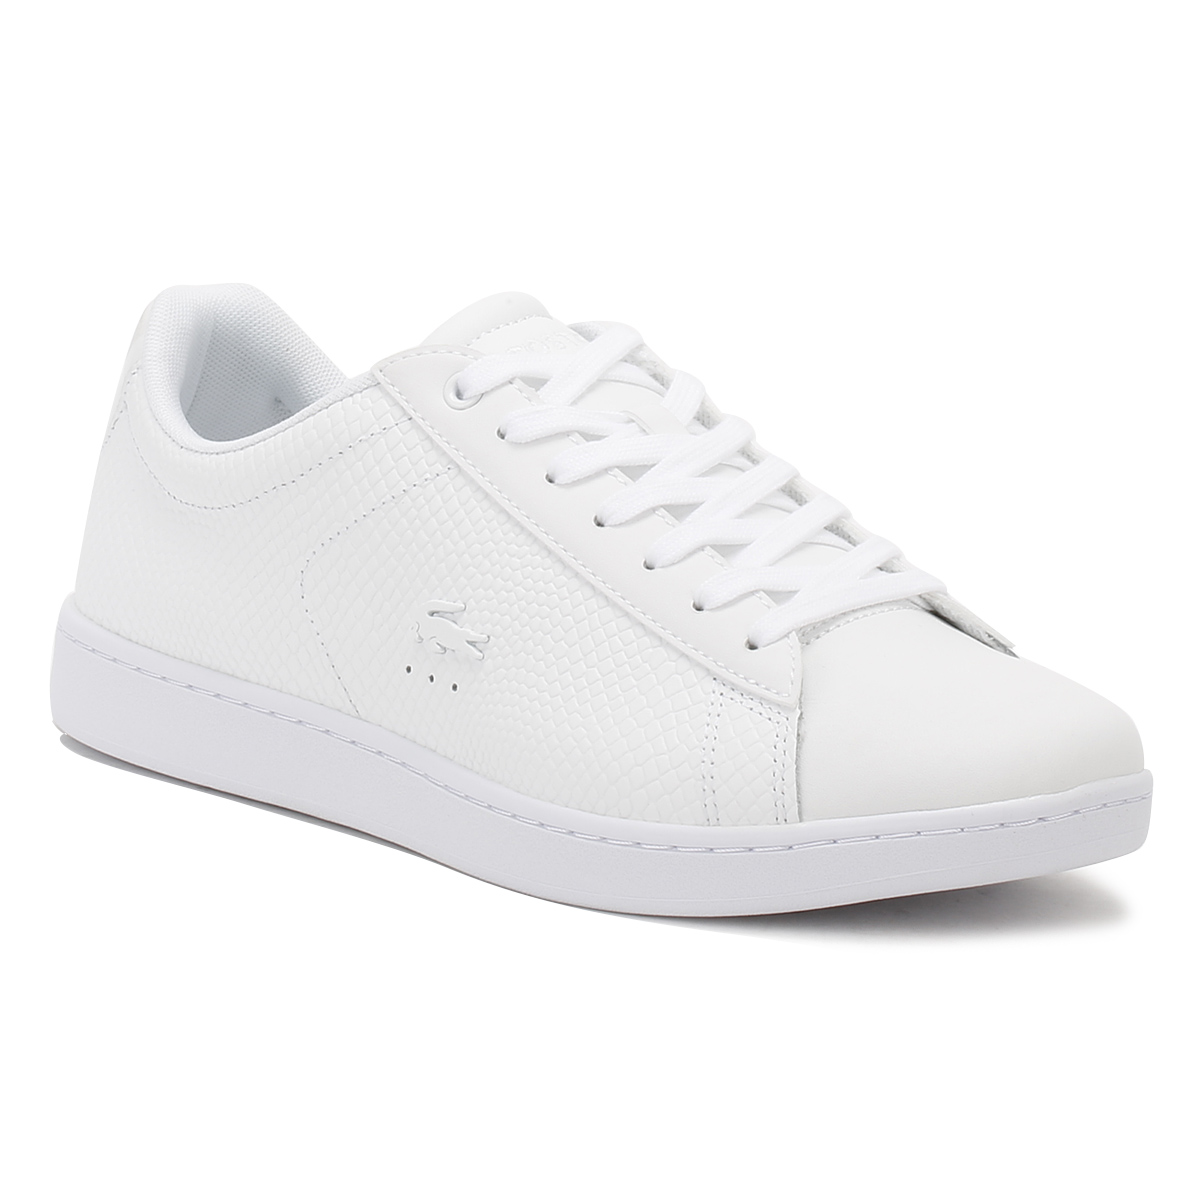 9db41a5e7 Details about Lacoste Womens Trainers White Carnaby EVO 317 3 Sport Casual  Shoes